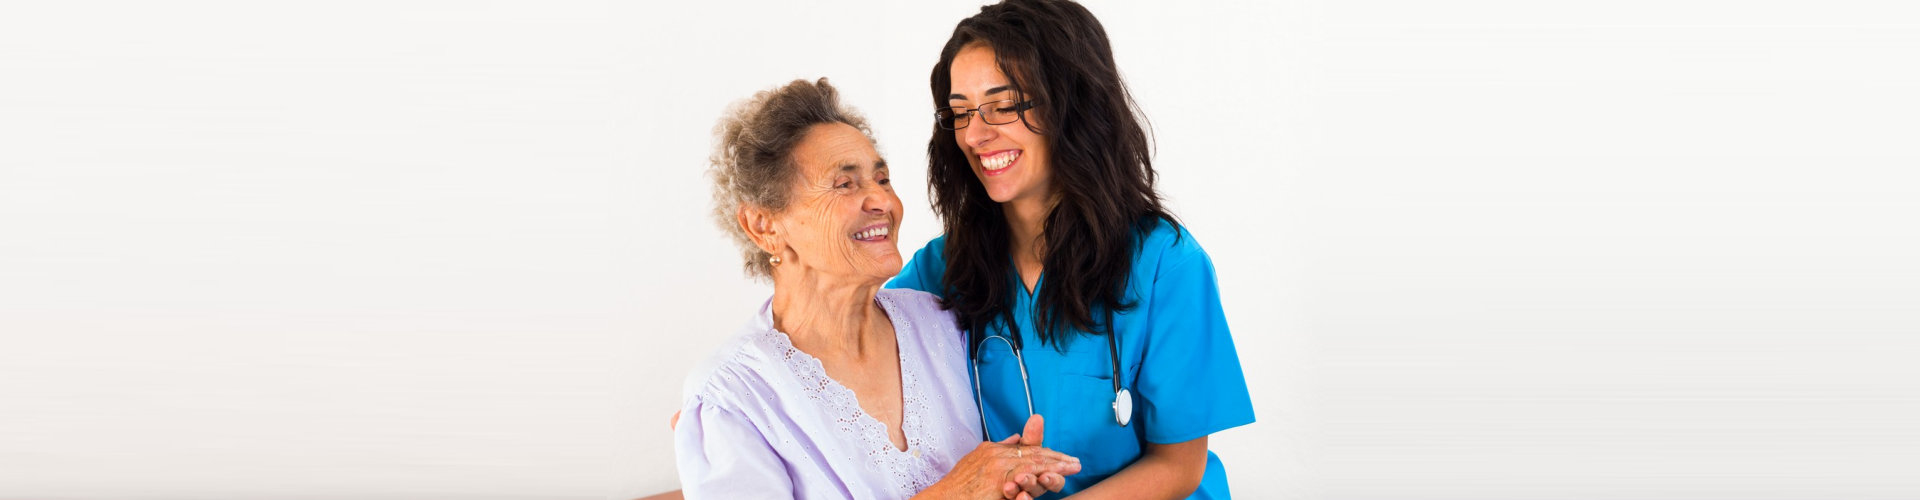 nurse and senior woman are laughing